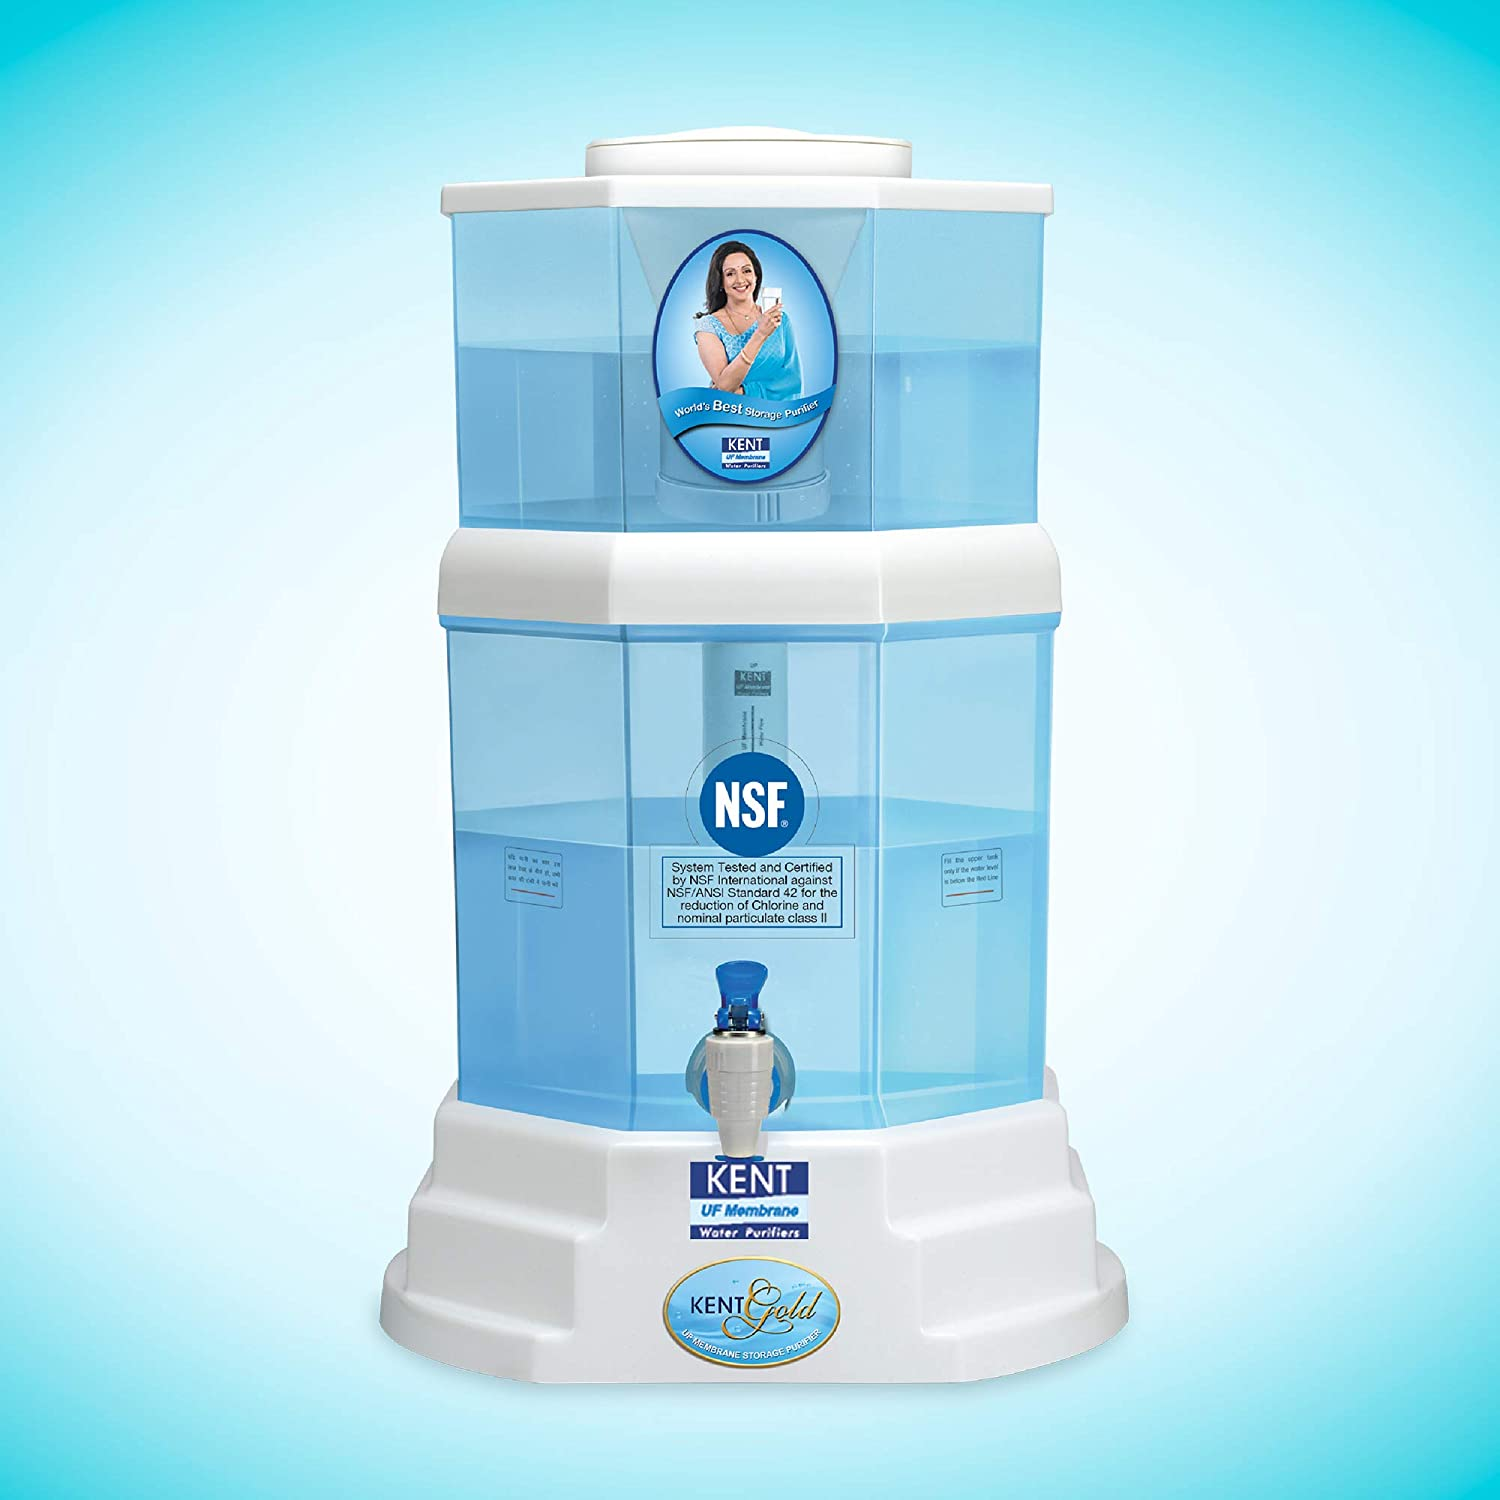 Open-Box & Refurbished (Unused) KENT Gold 20-Litres UF technology based Gravity Water Purifier, White kida.in